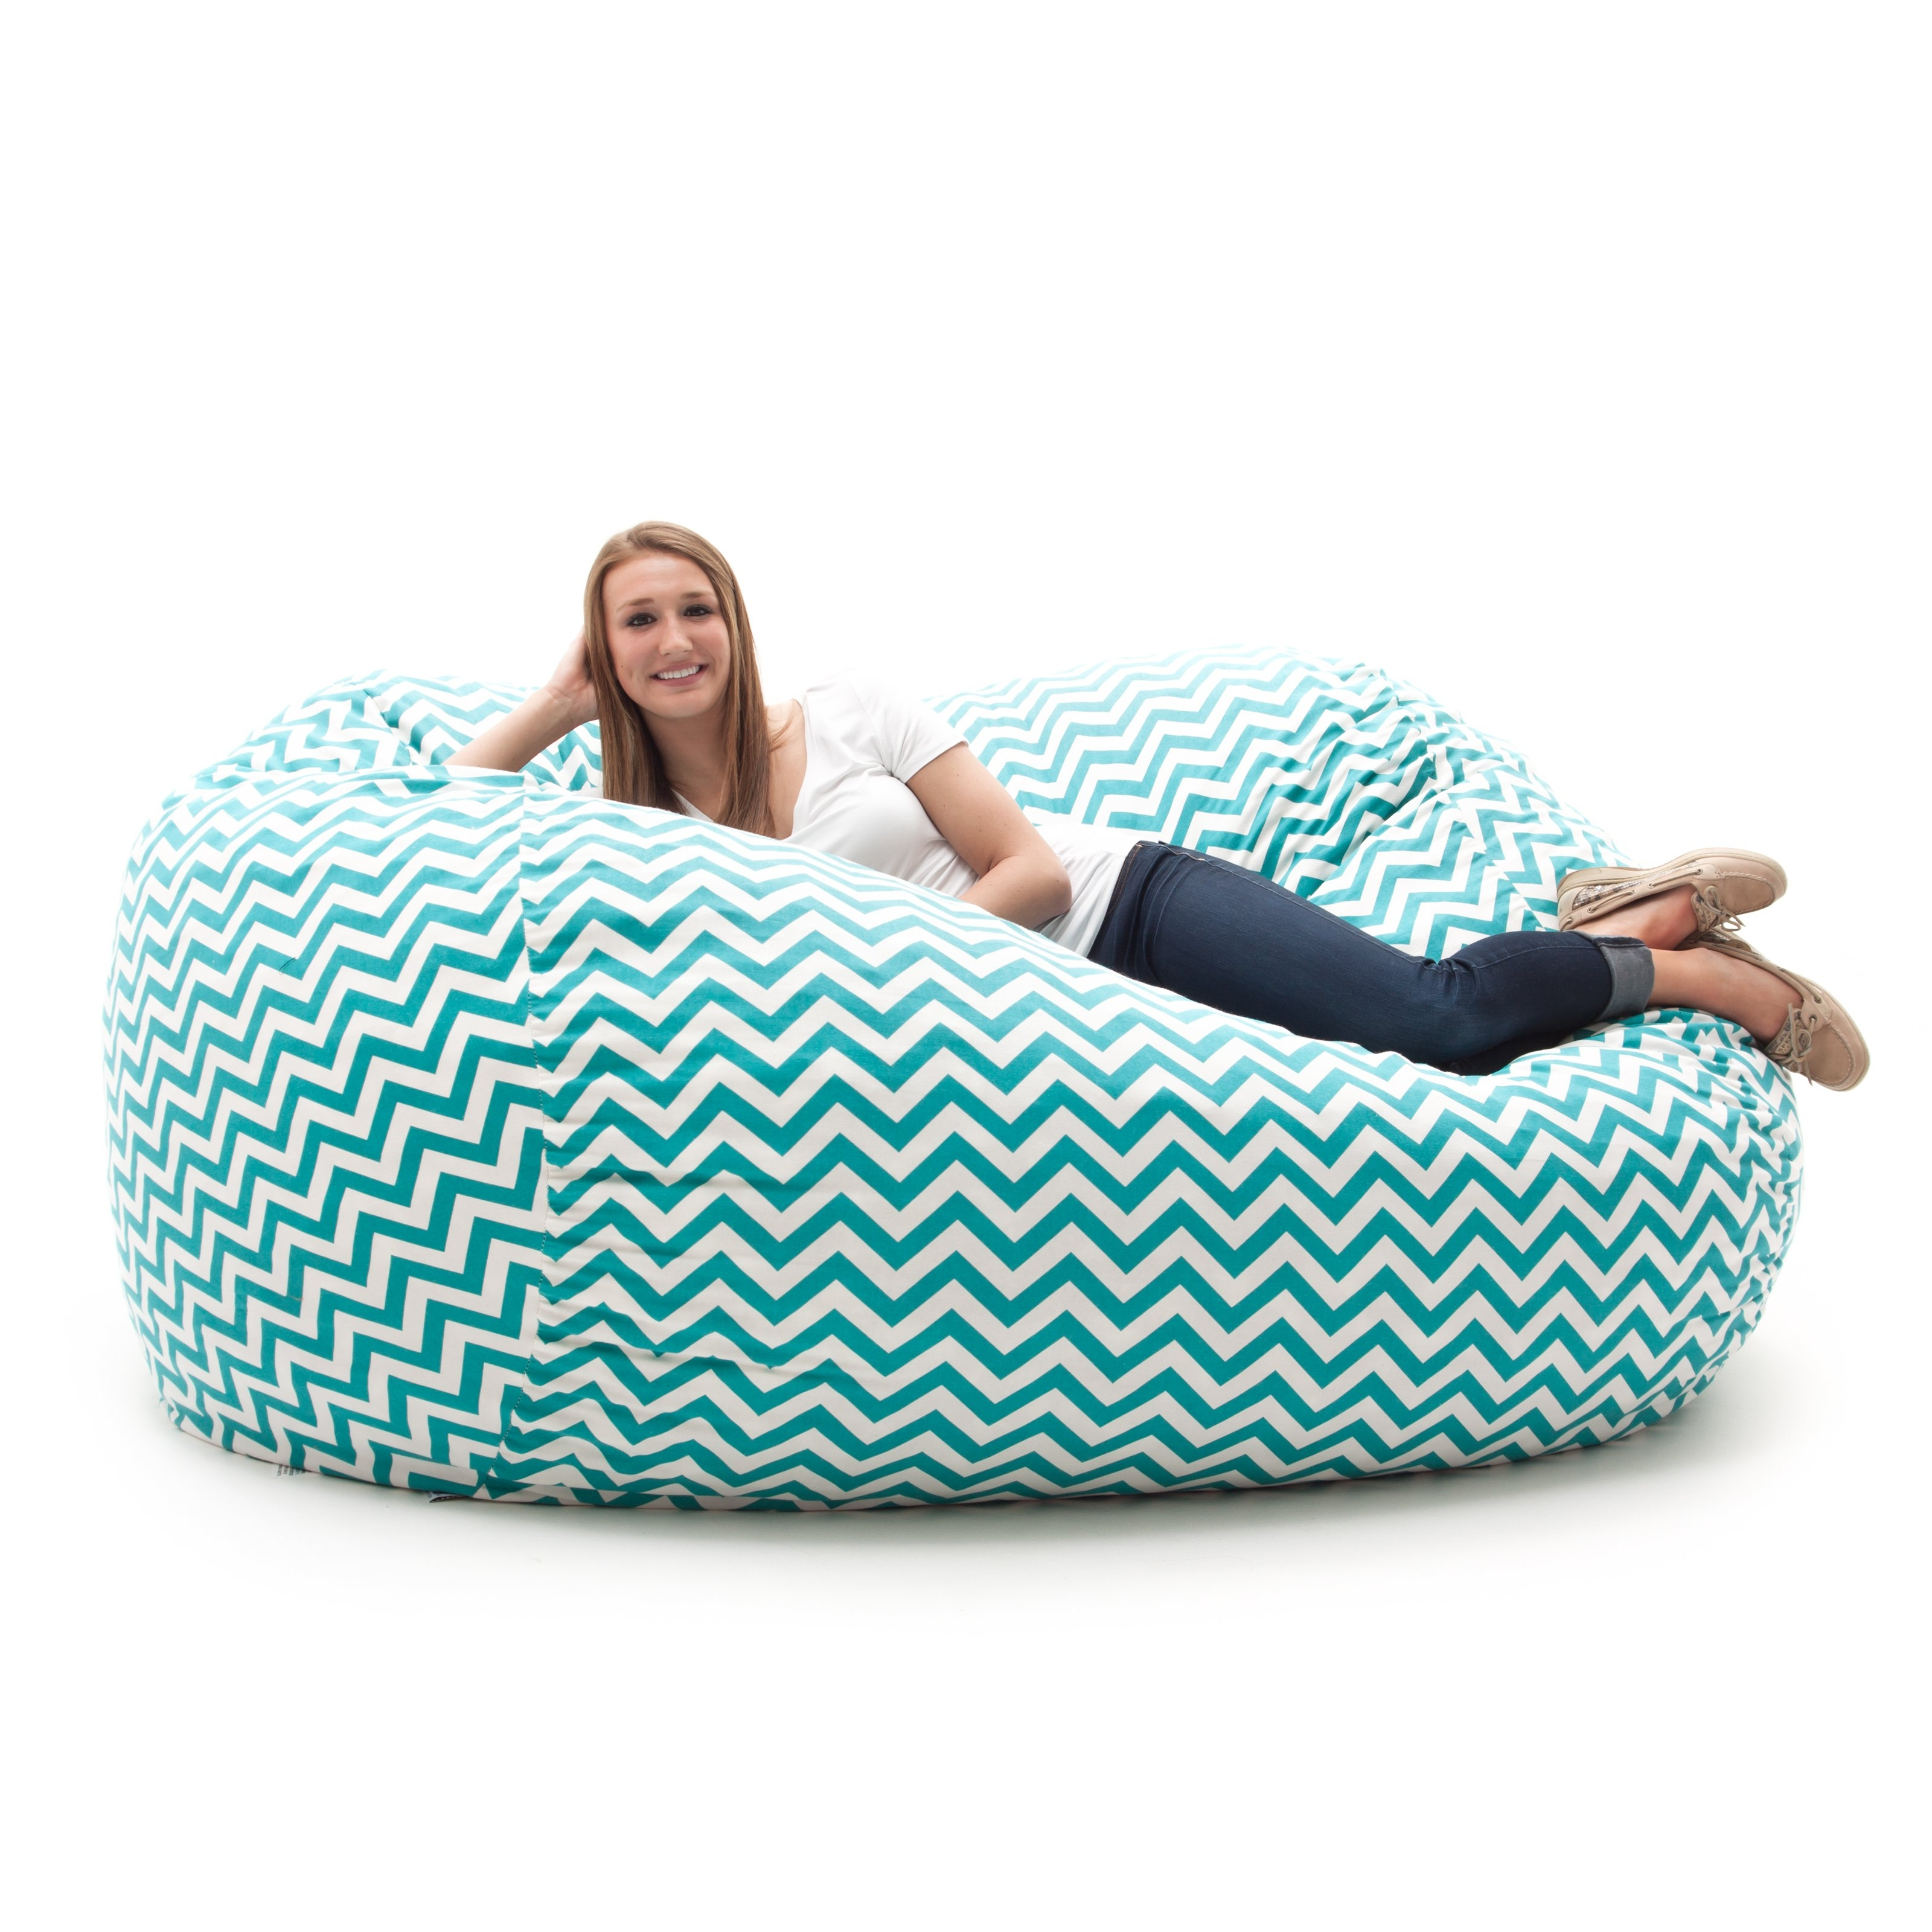 Fuf 7 Ft Xxl Twill Bean Bag Sofa Zig Zag Turquoise Bean Bags Inside Bean Bag Sofas And Chairs (Image 10 of 15)